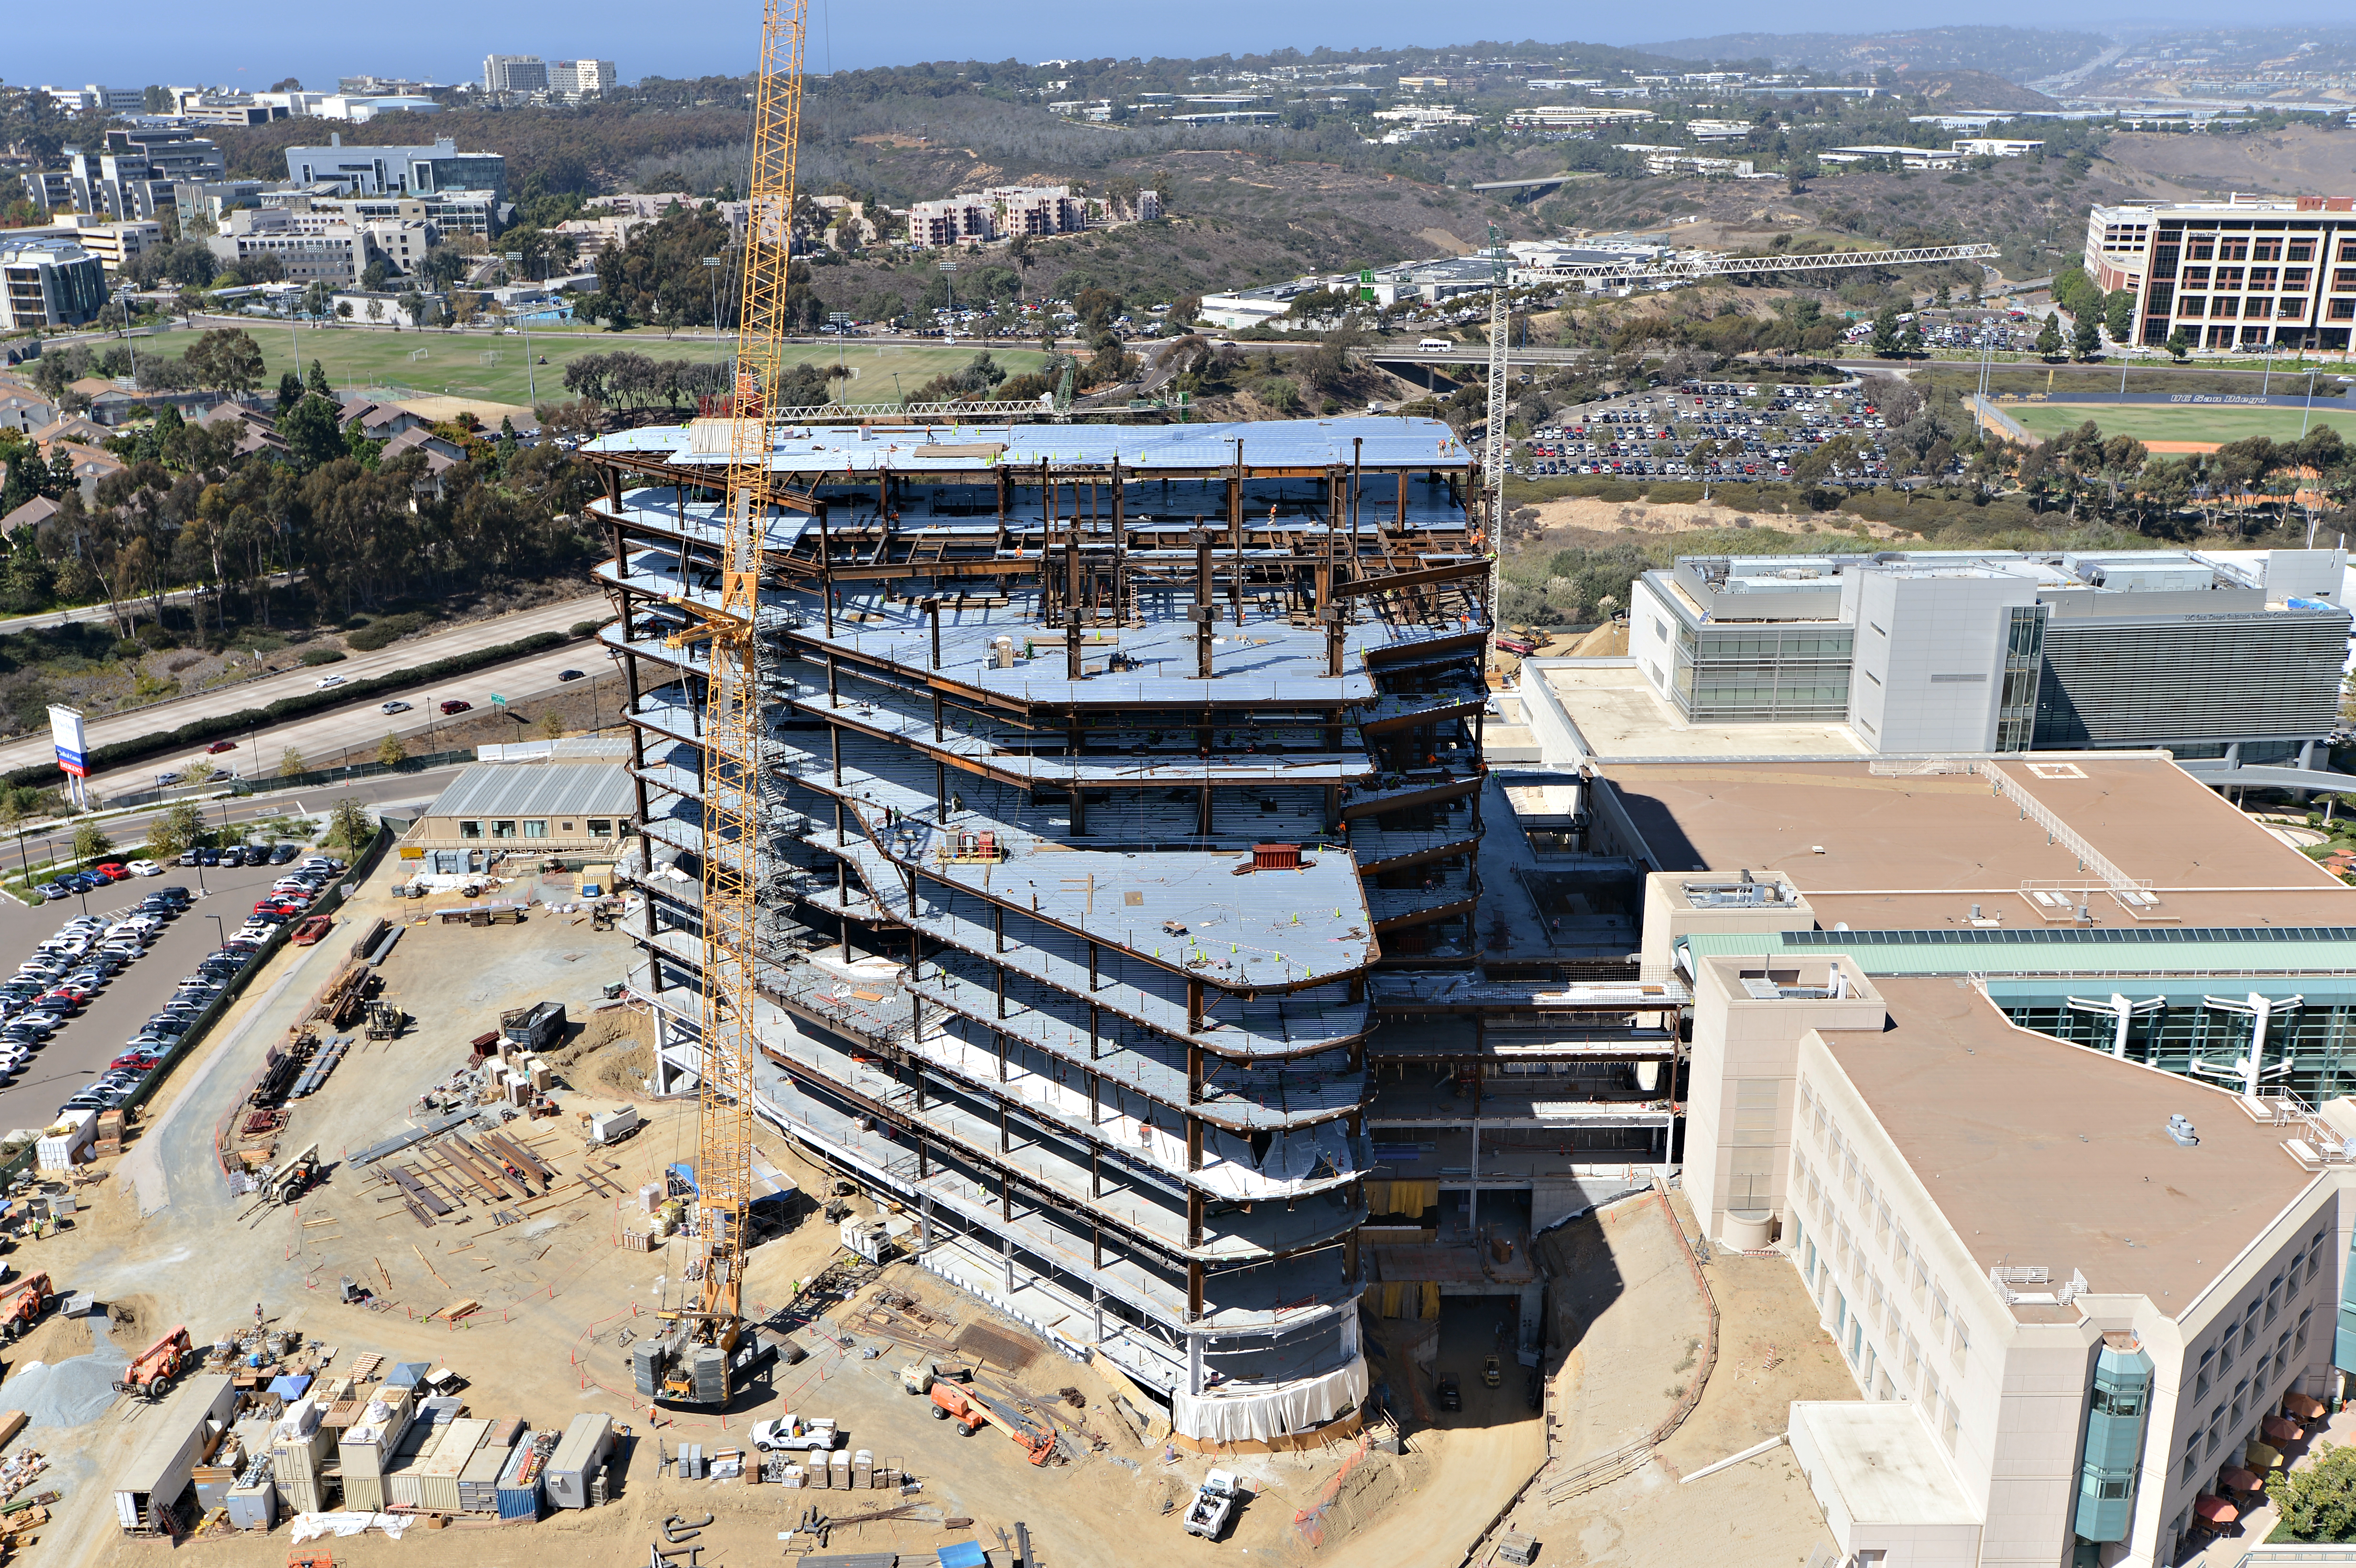 UC San Diego Jacobs Medical Center 10-1-13 (13)